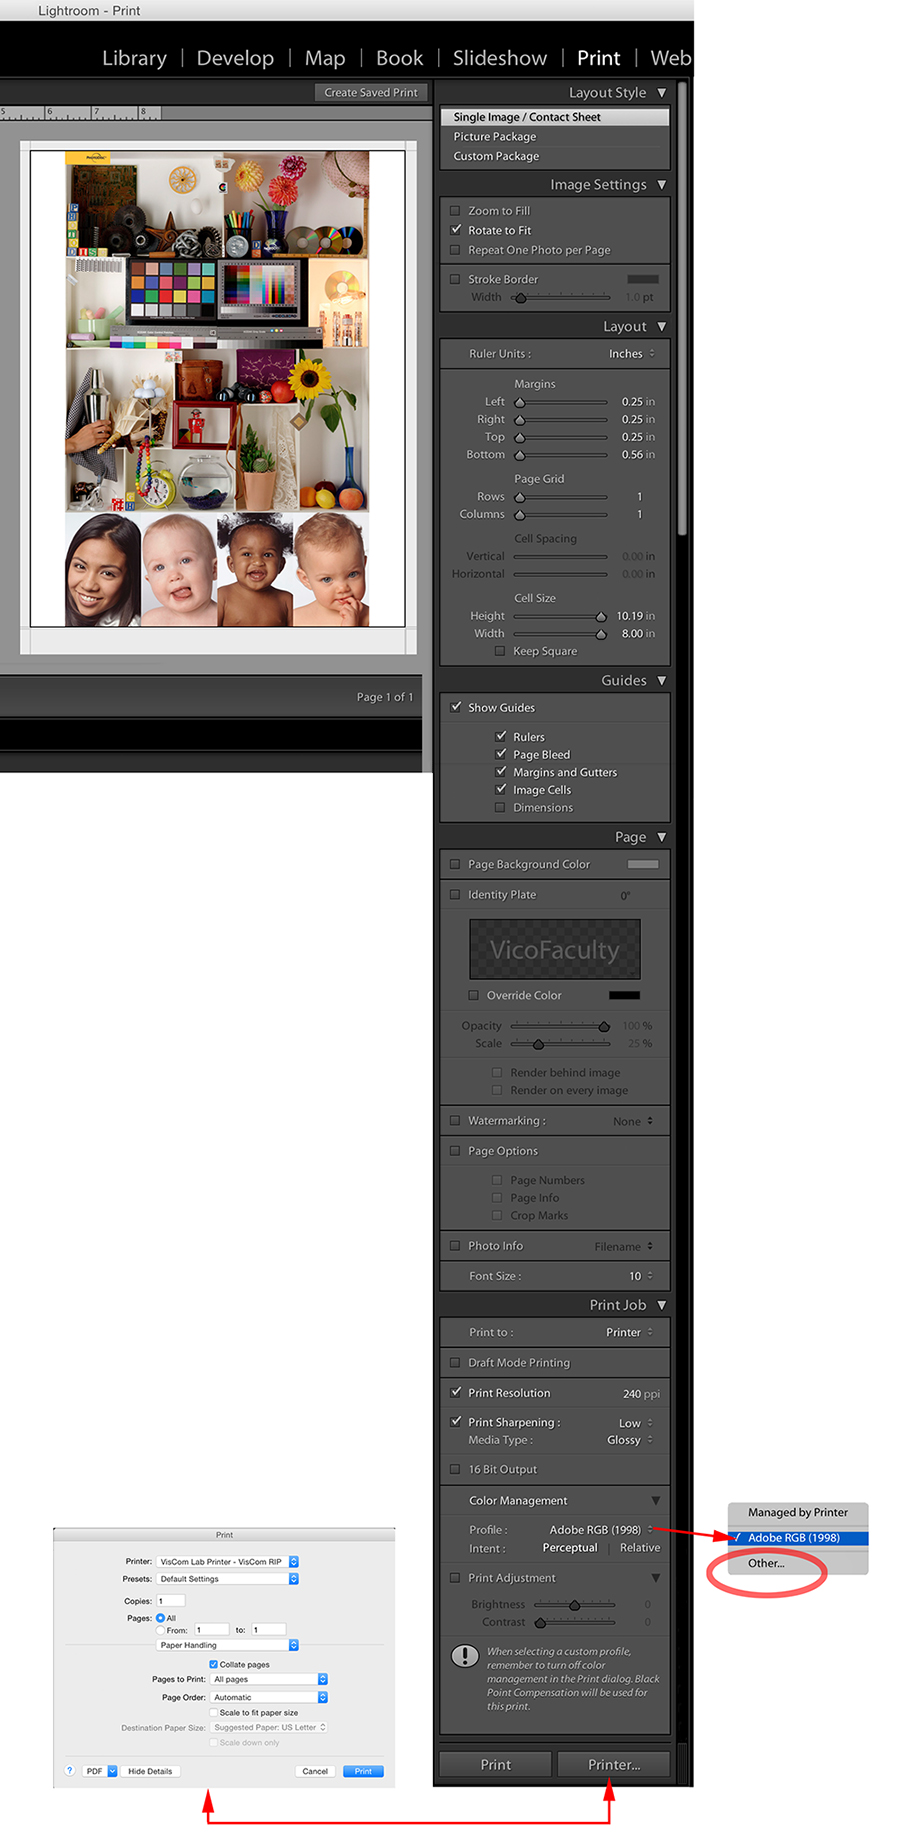 Printing from Lightroom to the VisCom RIP